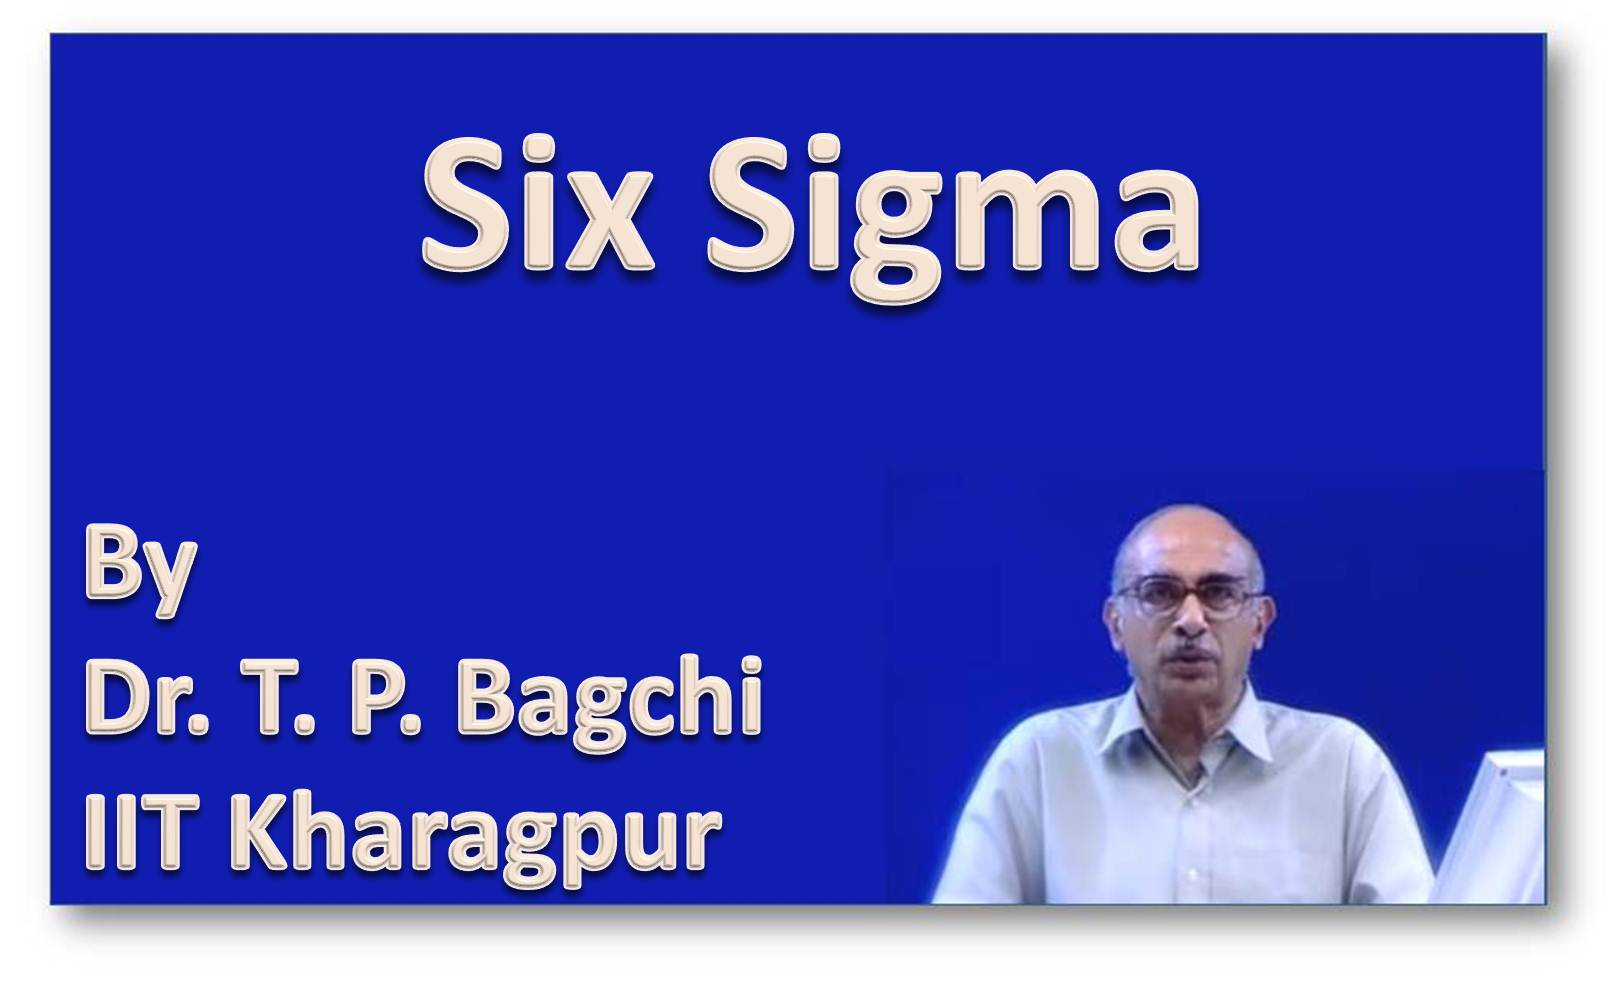 http://study.aisectonline.com/images/SubCategory/Video Lecture Series on Six Sigma by Dr. T. P. Bagchi, IIT Kharagpur.jpg